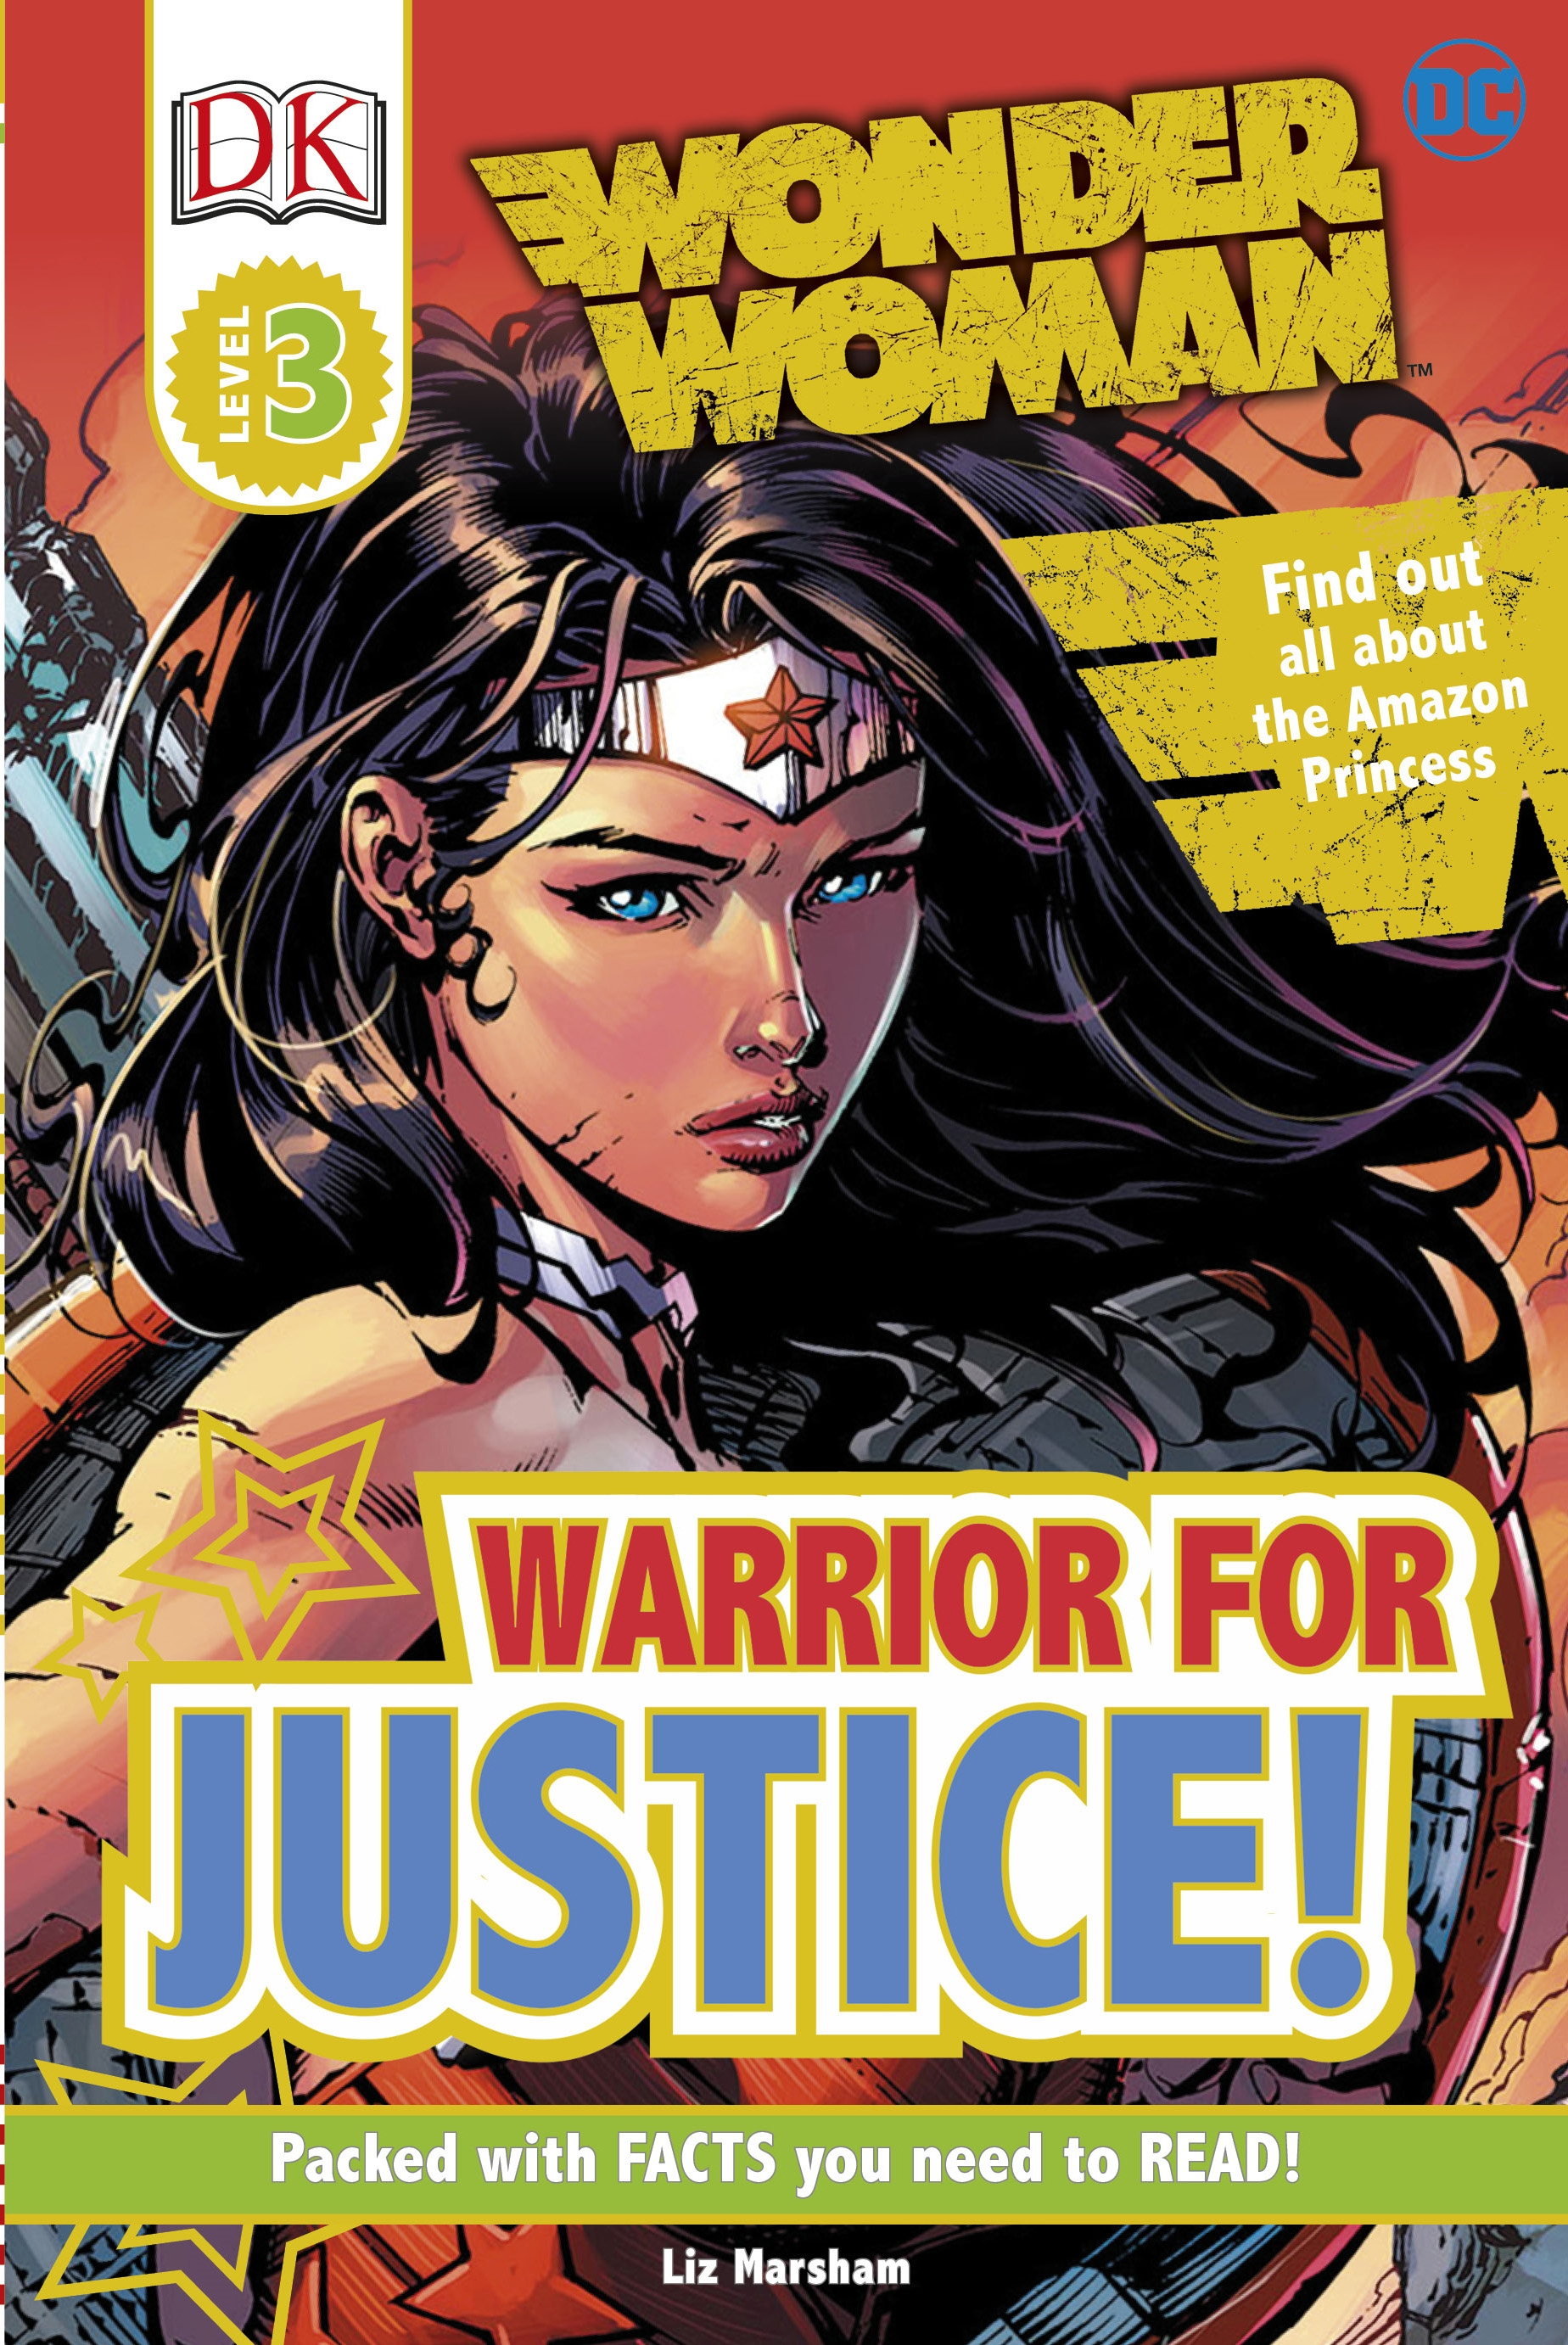 DK Reader: DC Comics Wonder Woman: Warrior for Justice! by